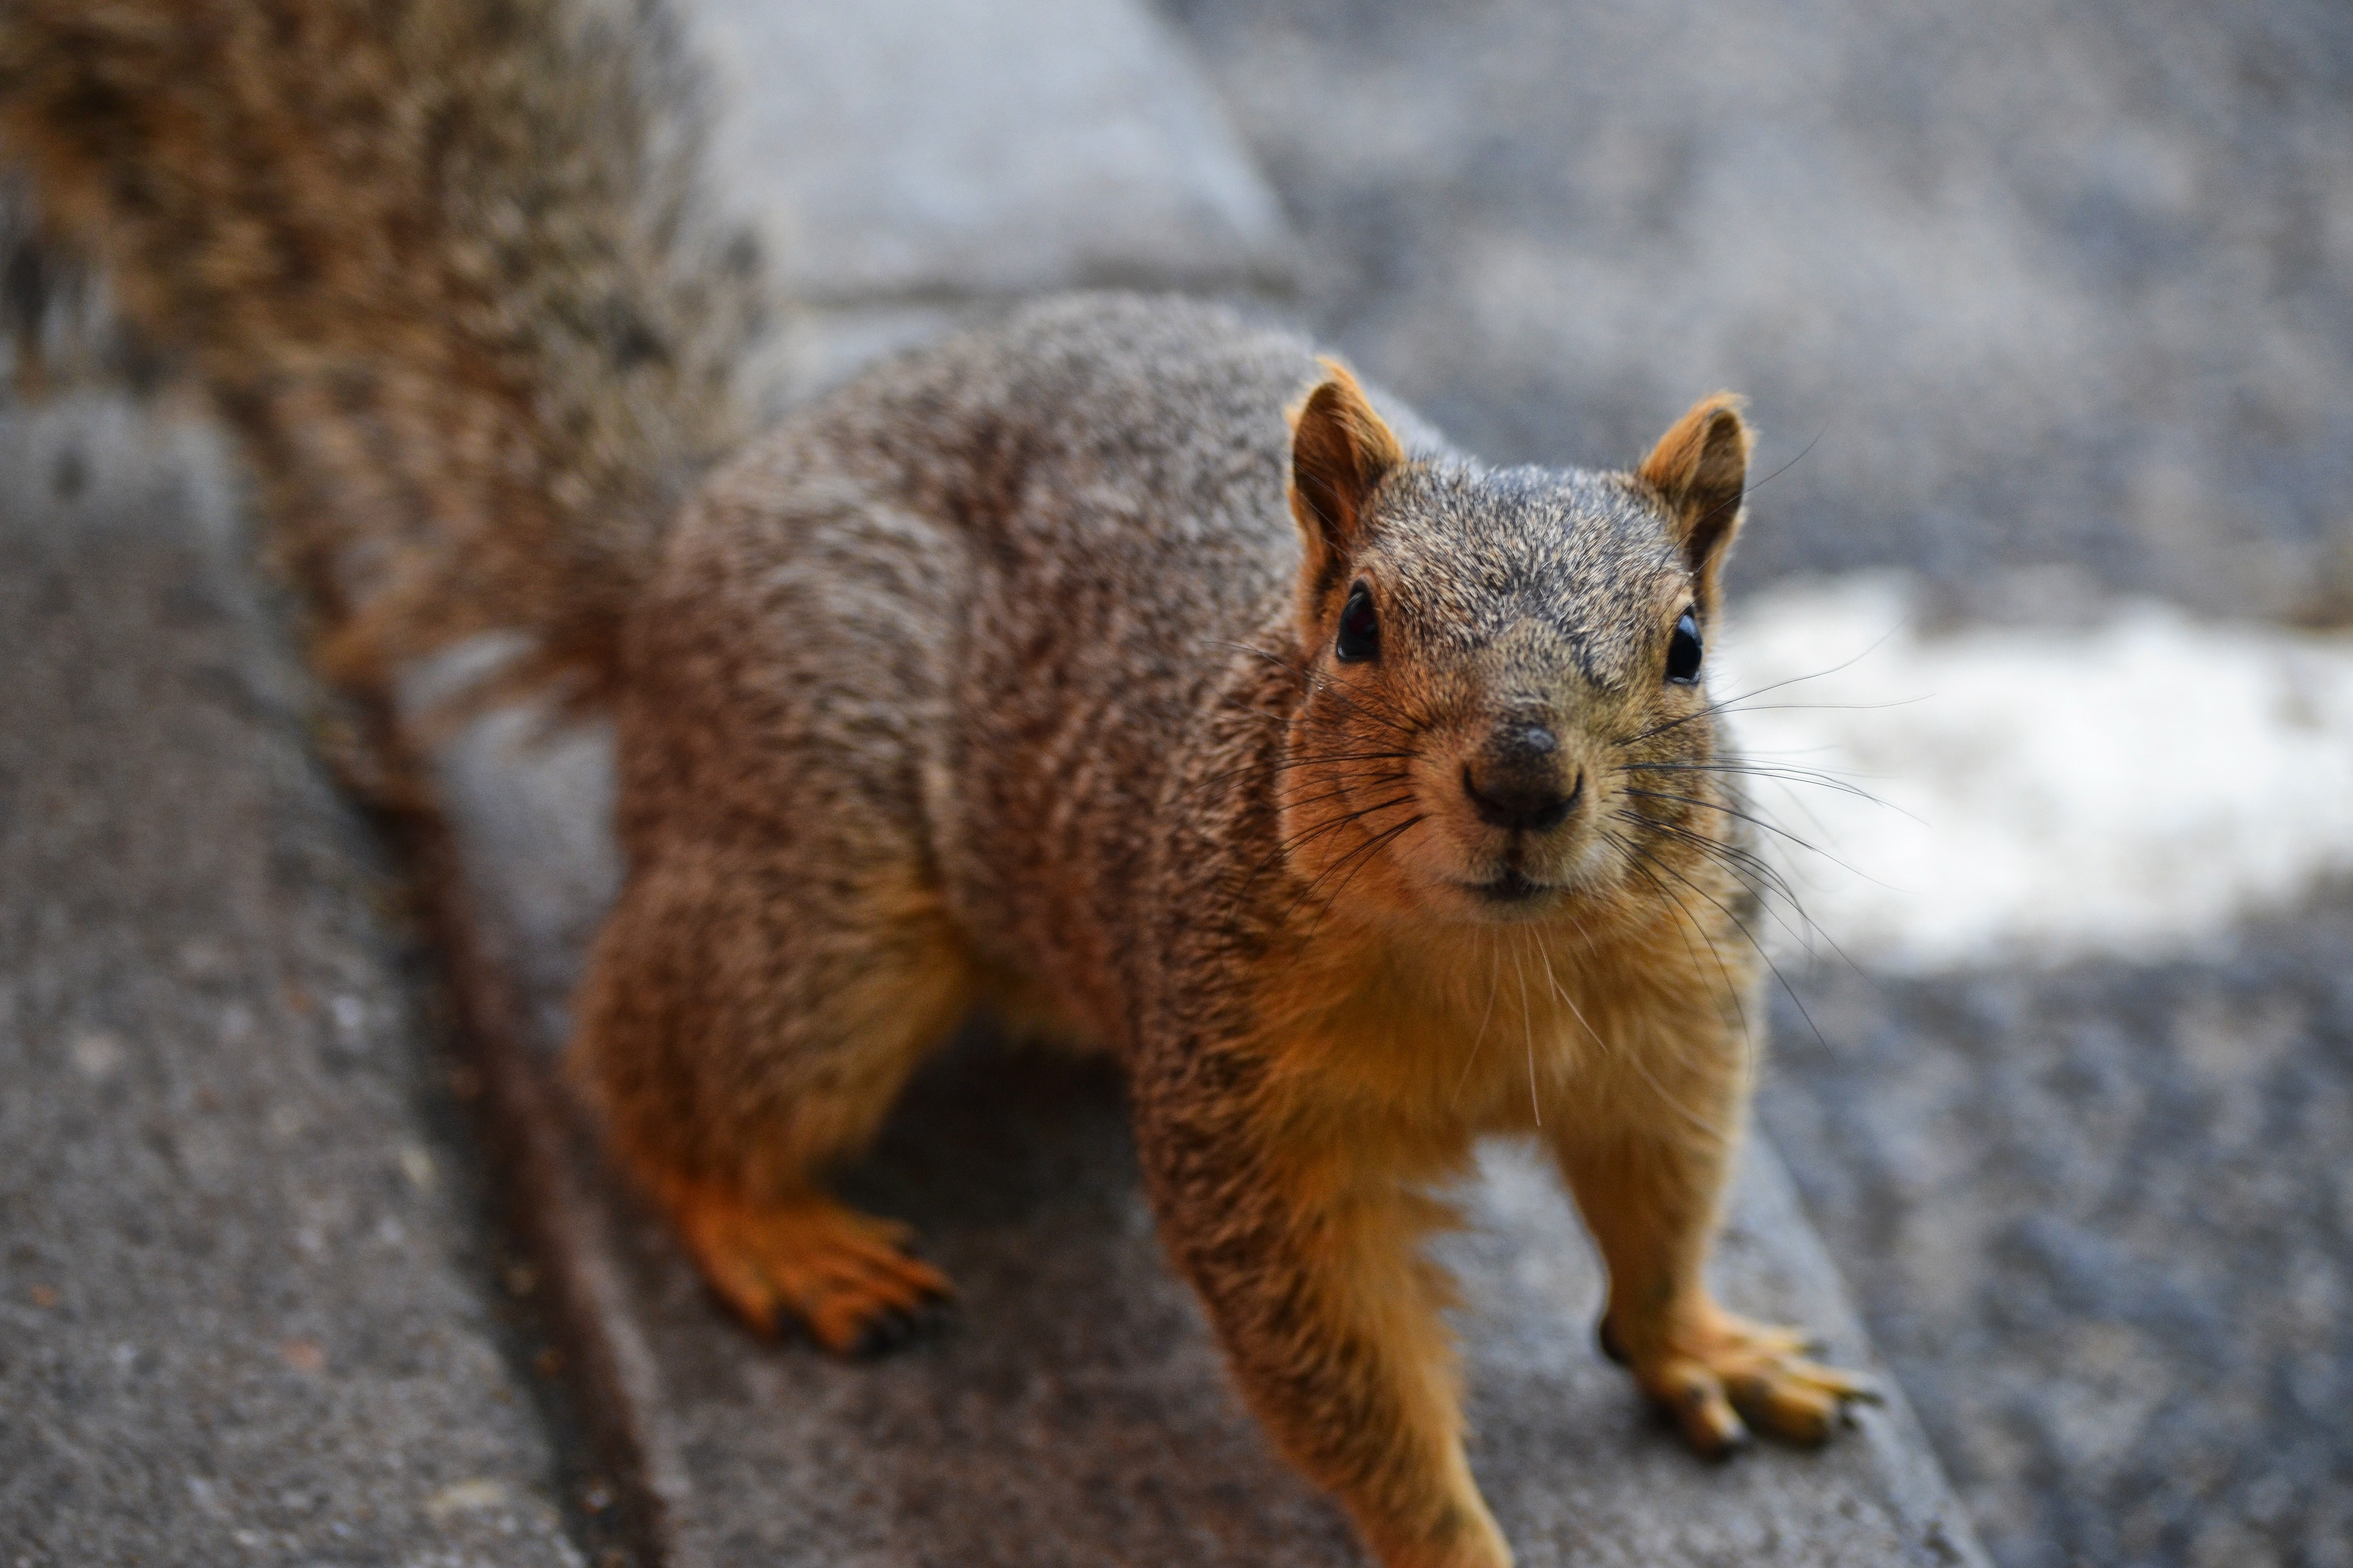 Red-haired squirrel with a fluffy tail looking into the camera, Red-haired squirrel with a fluffy tail looking into the camera